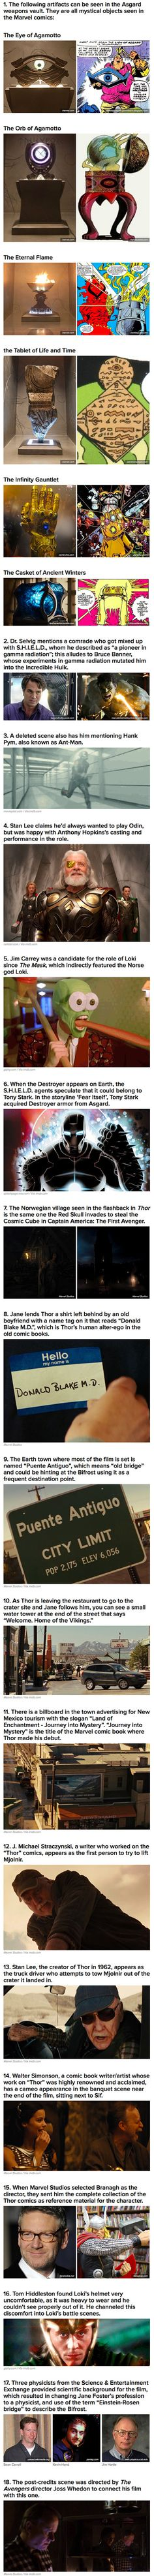 Geeky facts you may not have known about the movie Thor.